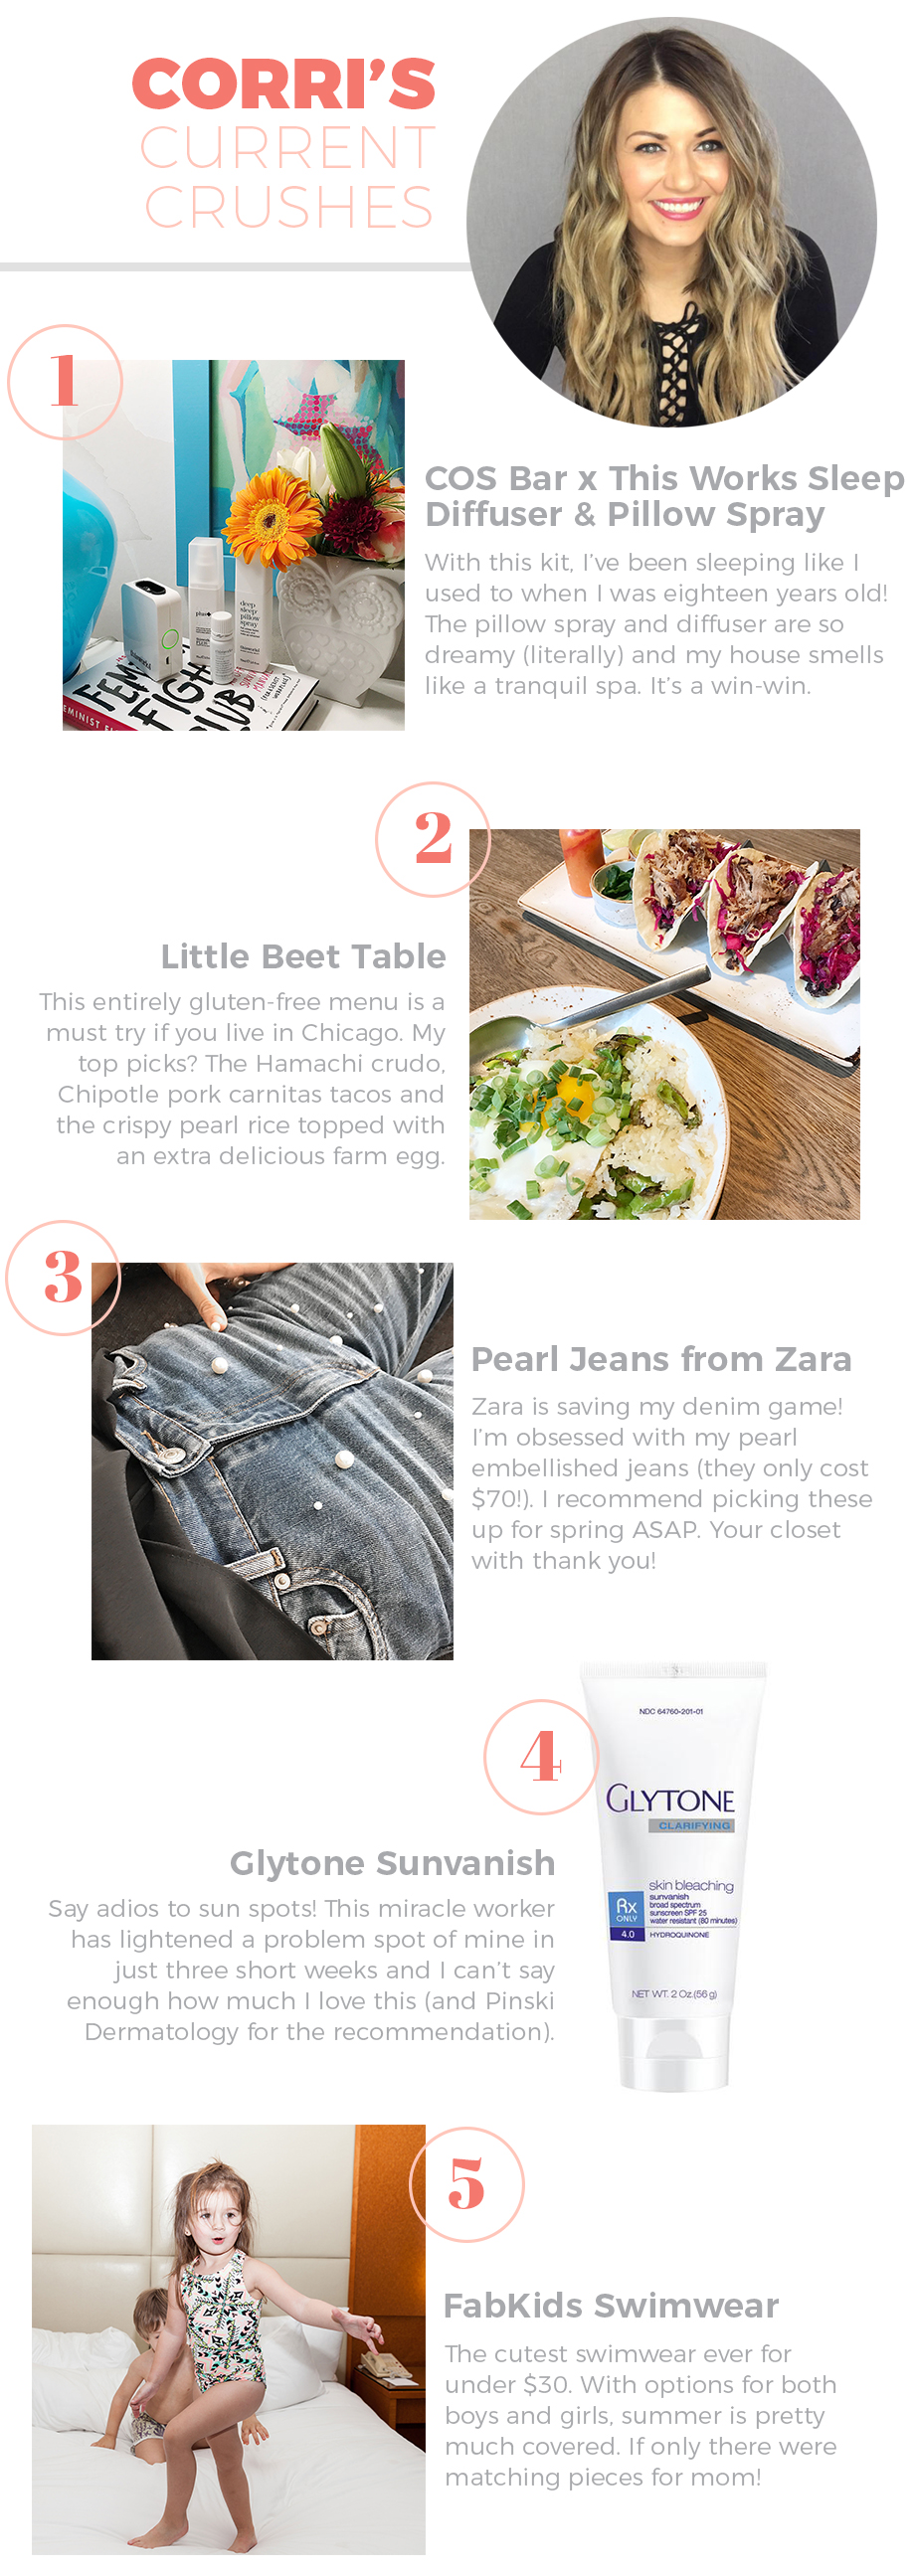 Denim from Zara, a Gluten-Free menu and more on what I'm crushing on in April!